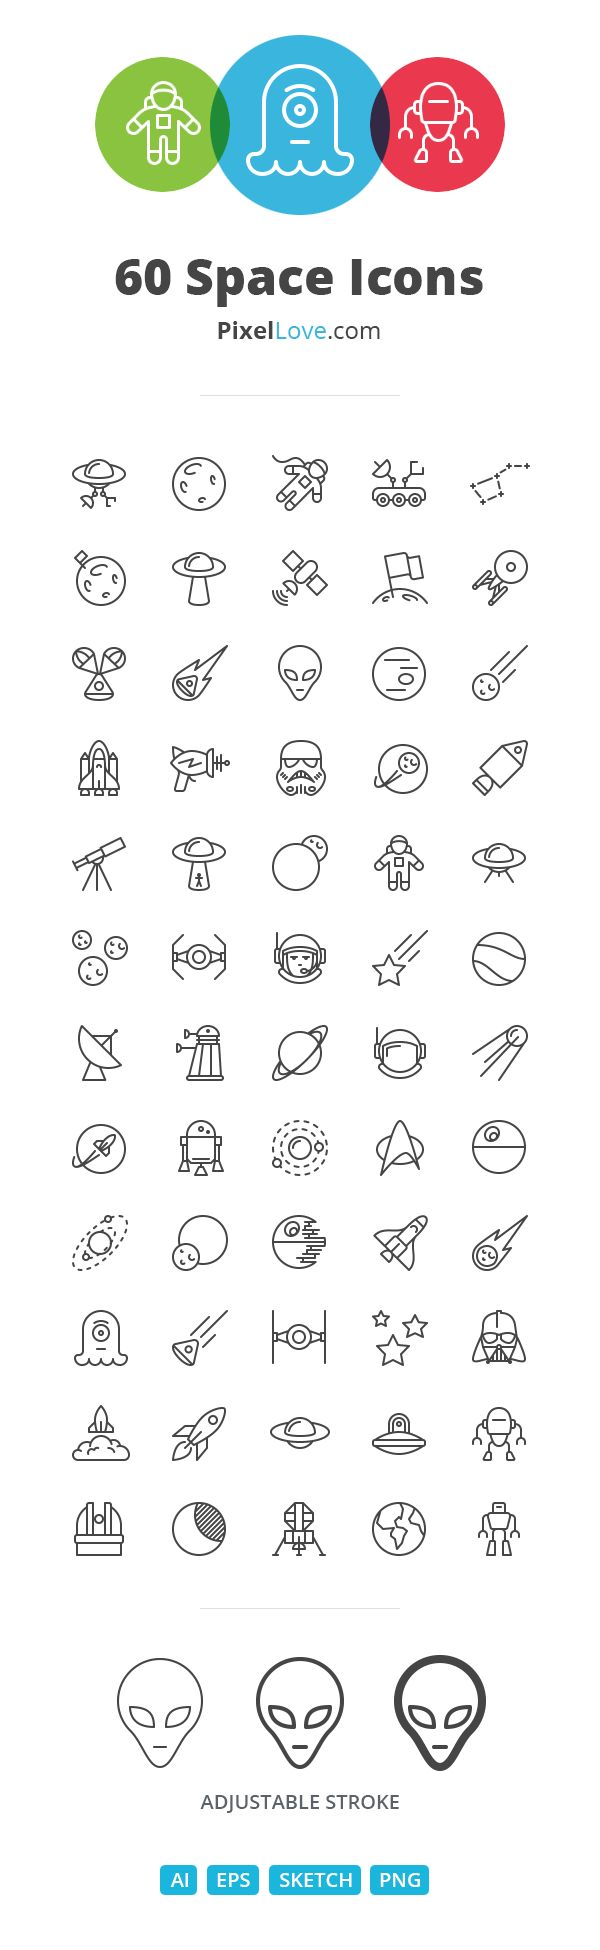 Today's featured freebie is a stunning set of iOS line icons by PixelLove. Each icon is meticulously designed on a pixel grid...